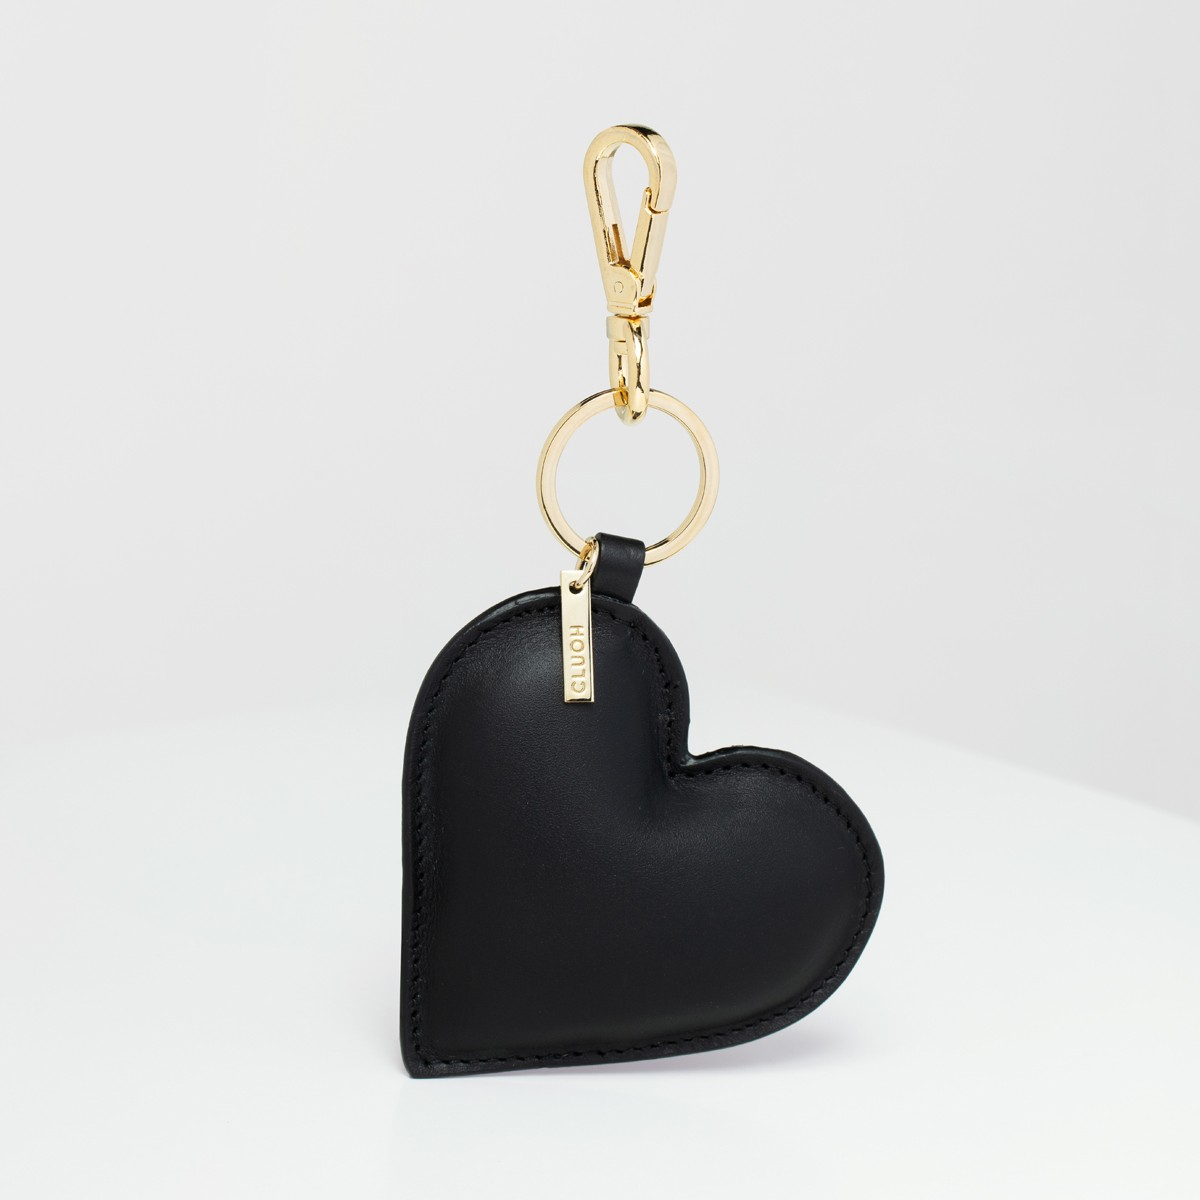 ANDY HEART BLACK